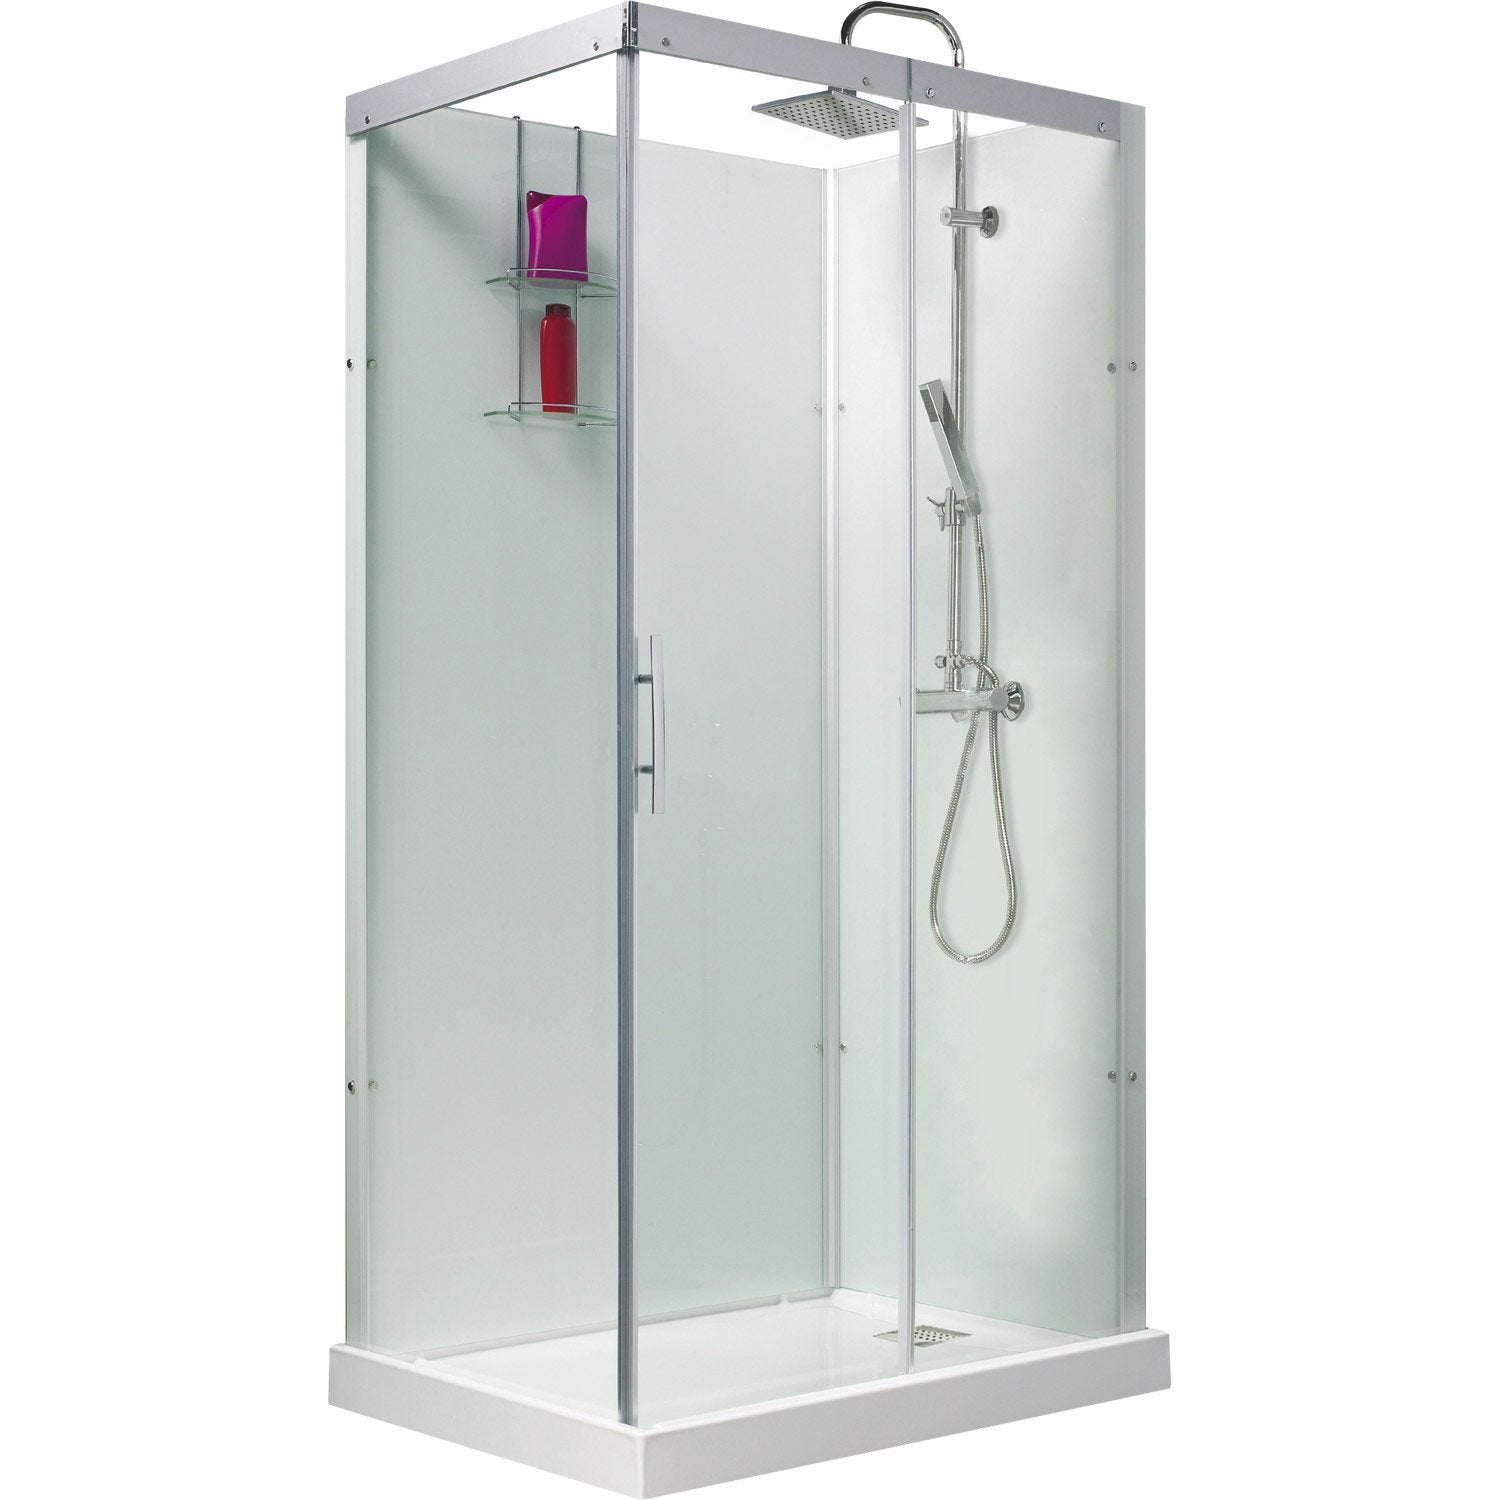 Cabine de douche rectangulaire 110x80 cm thalaglass 2 for Photos de douche